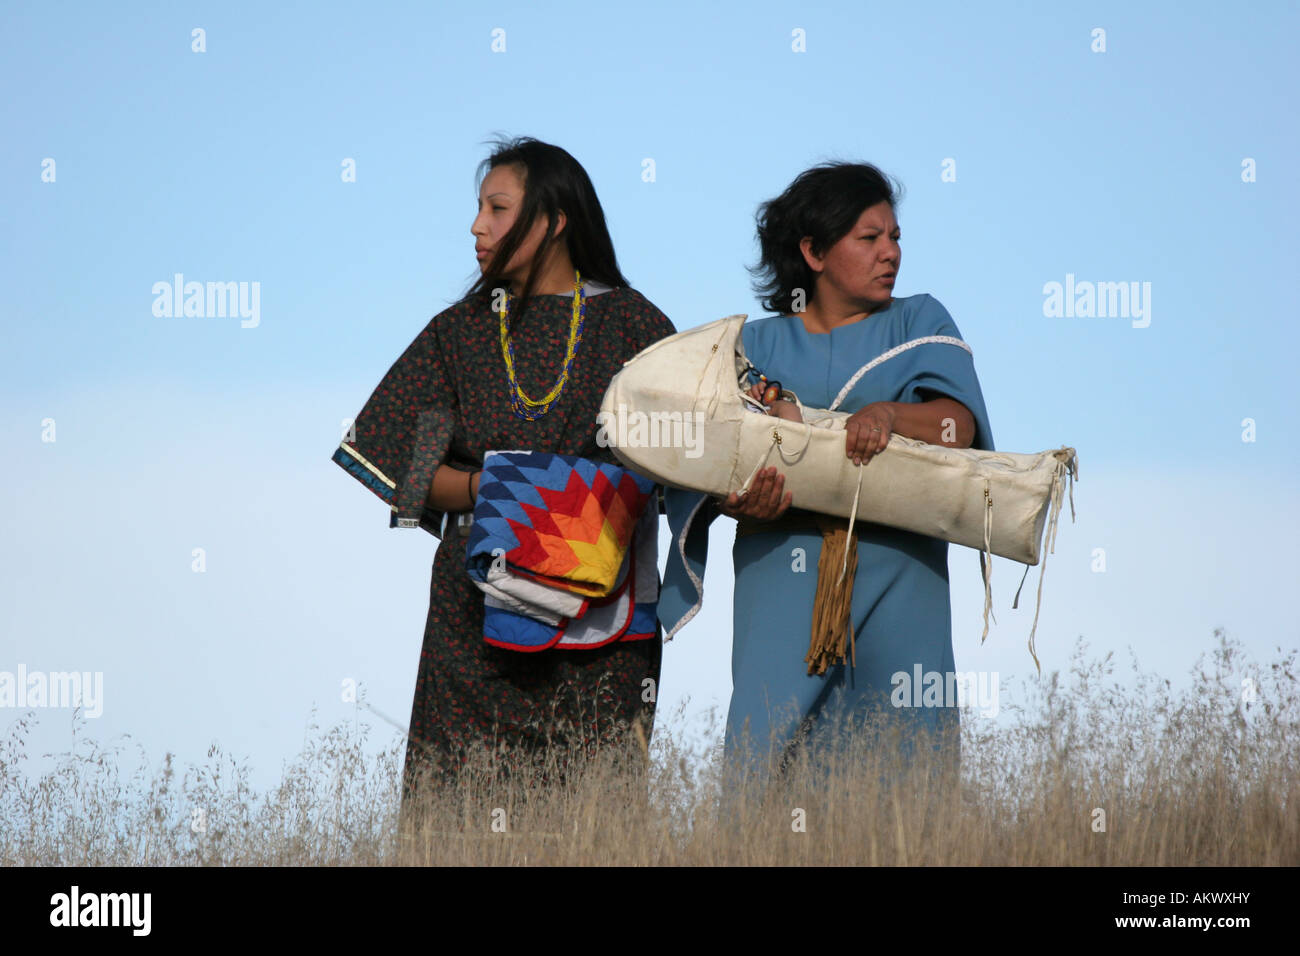 Two young ladies on top of a hill holding a blanket and a baby in a cradle - Stock Image